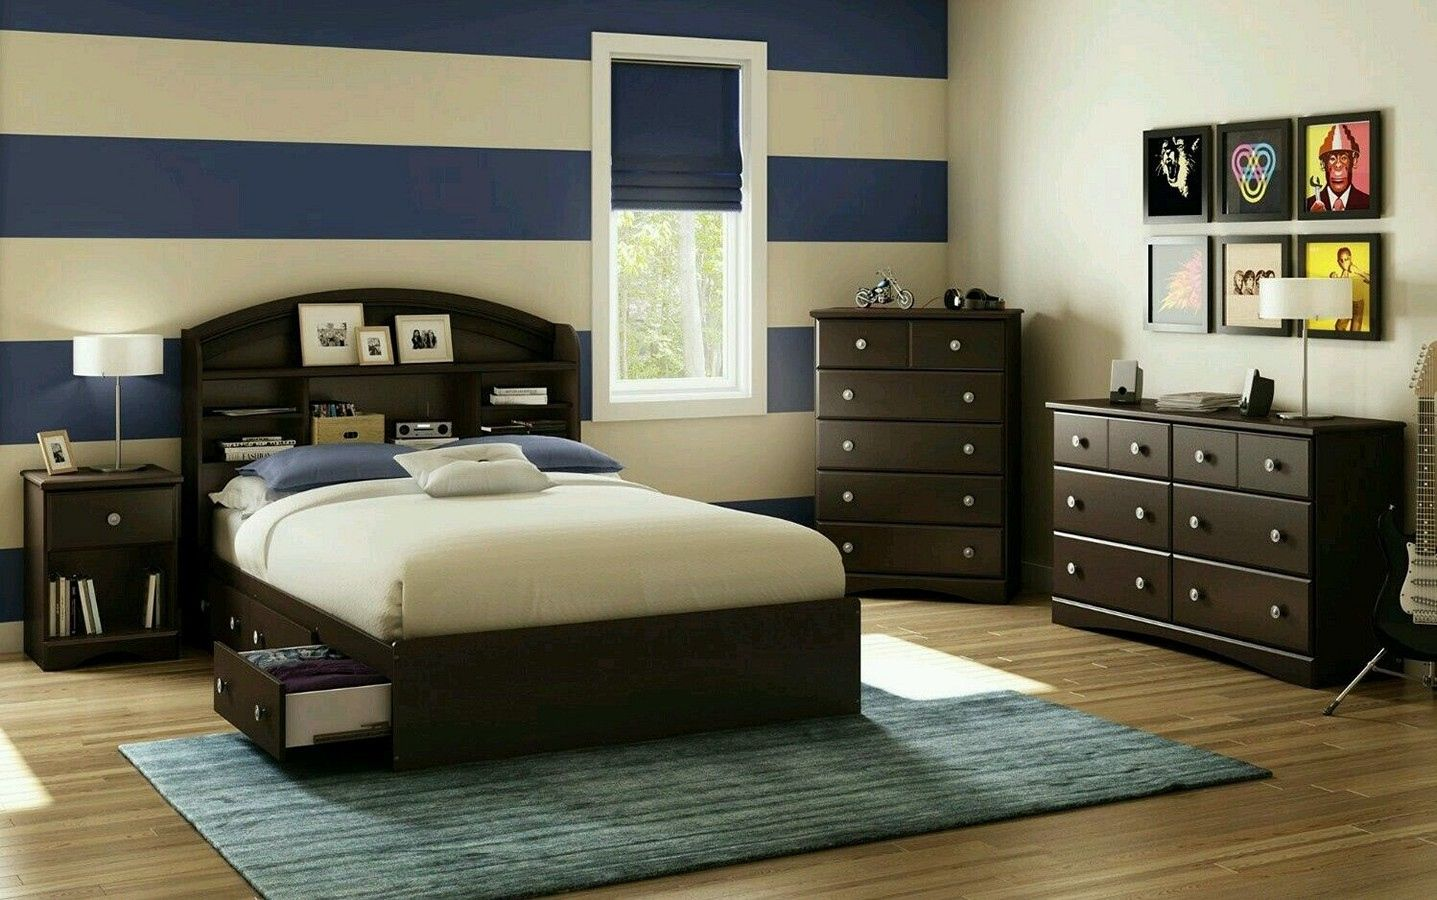 young mens bedroom decorating ideas  modern interior